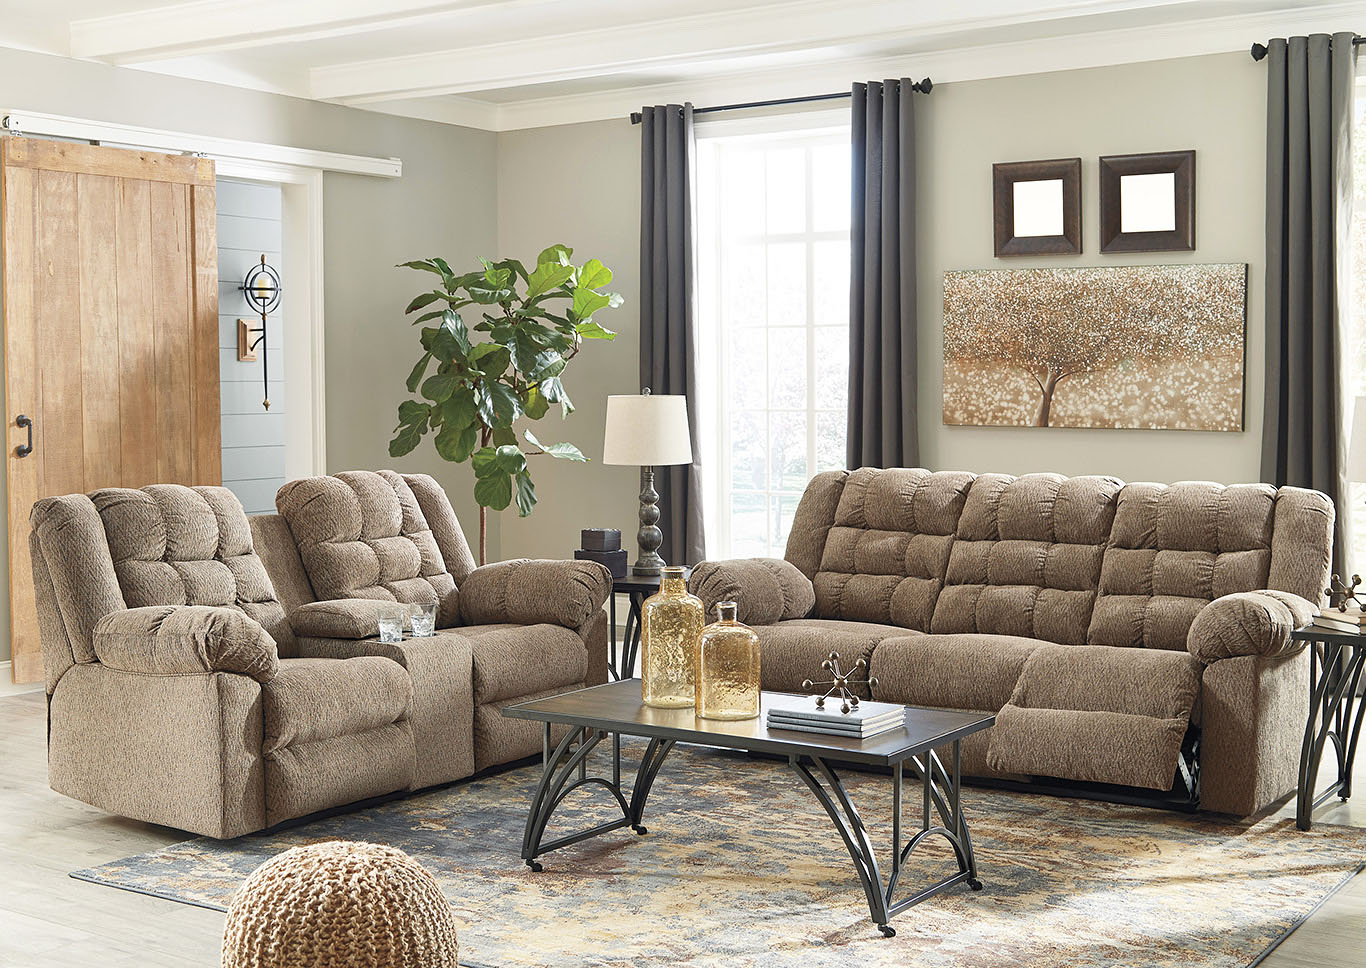 Workhorse Cocoa Reclining Sofa & Loveseat,Signature Design By Ashley